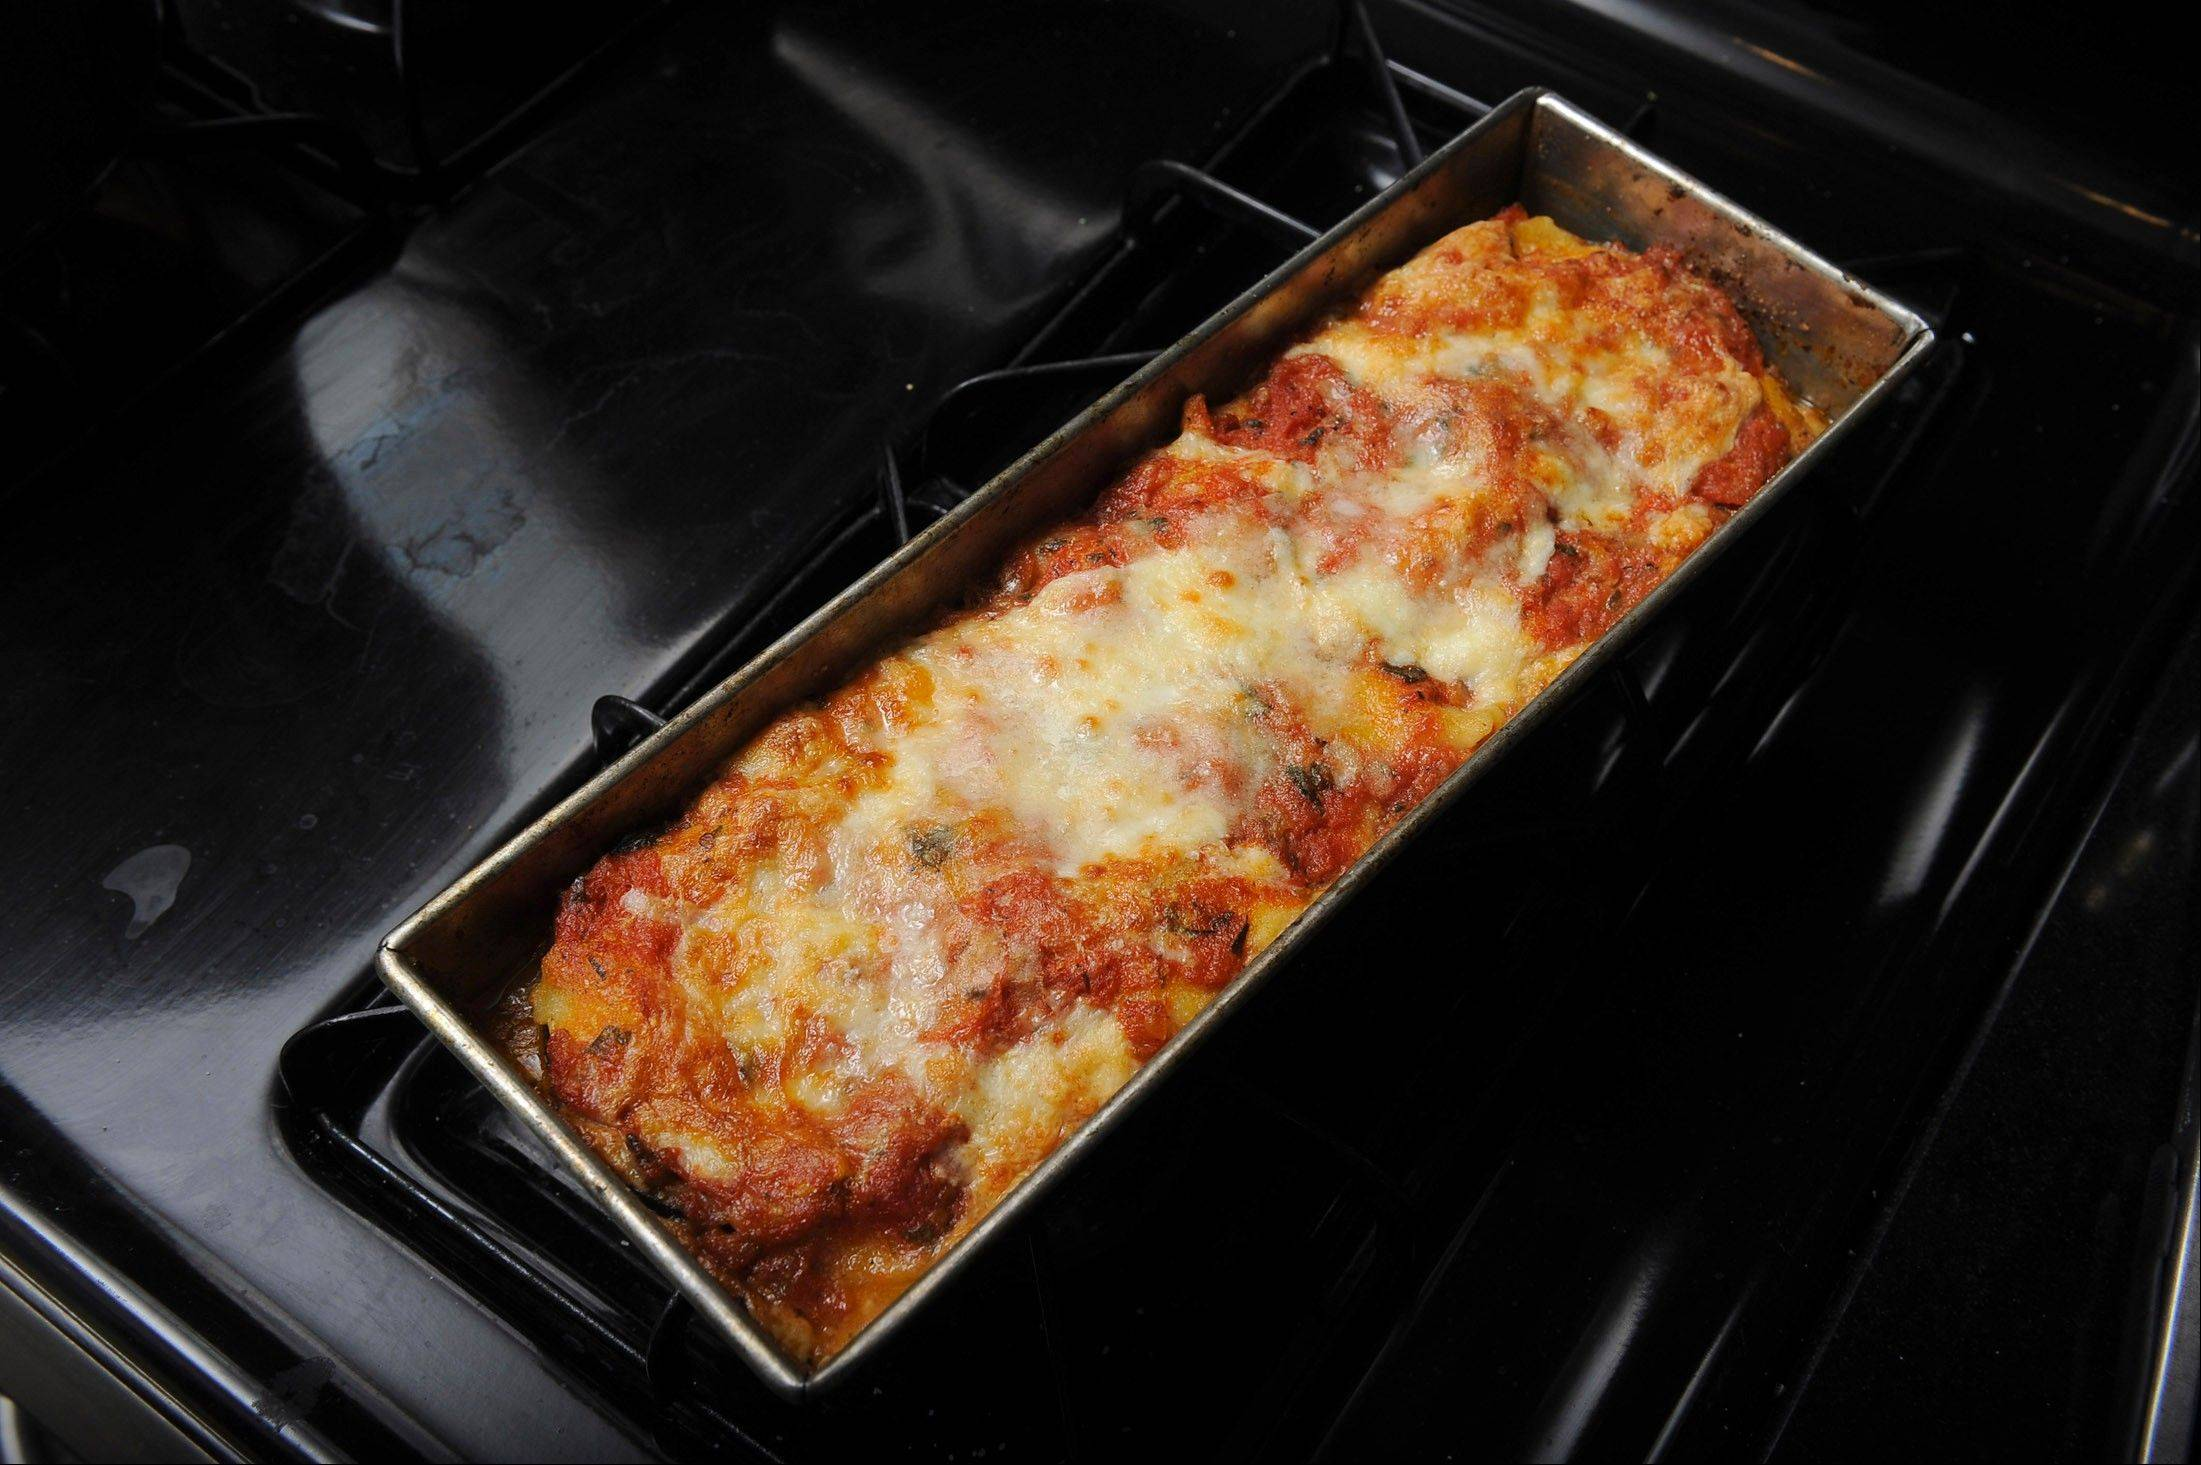 The beauty of fresh pasta is that it cooks in lasagna, such as this eggplant parmesan version, without having to be parboiled.